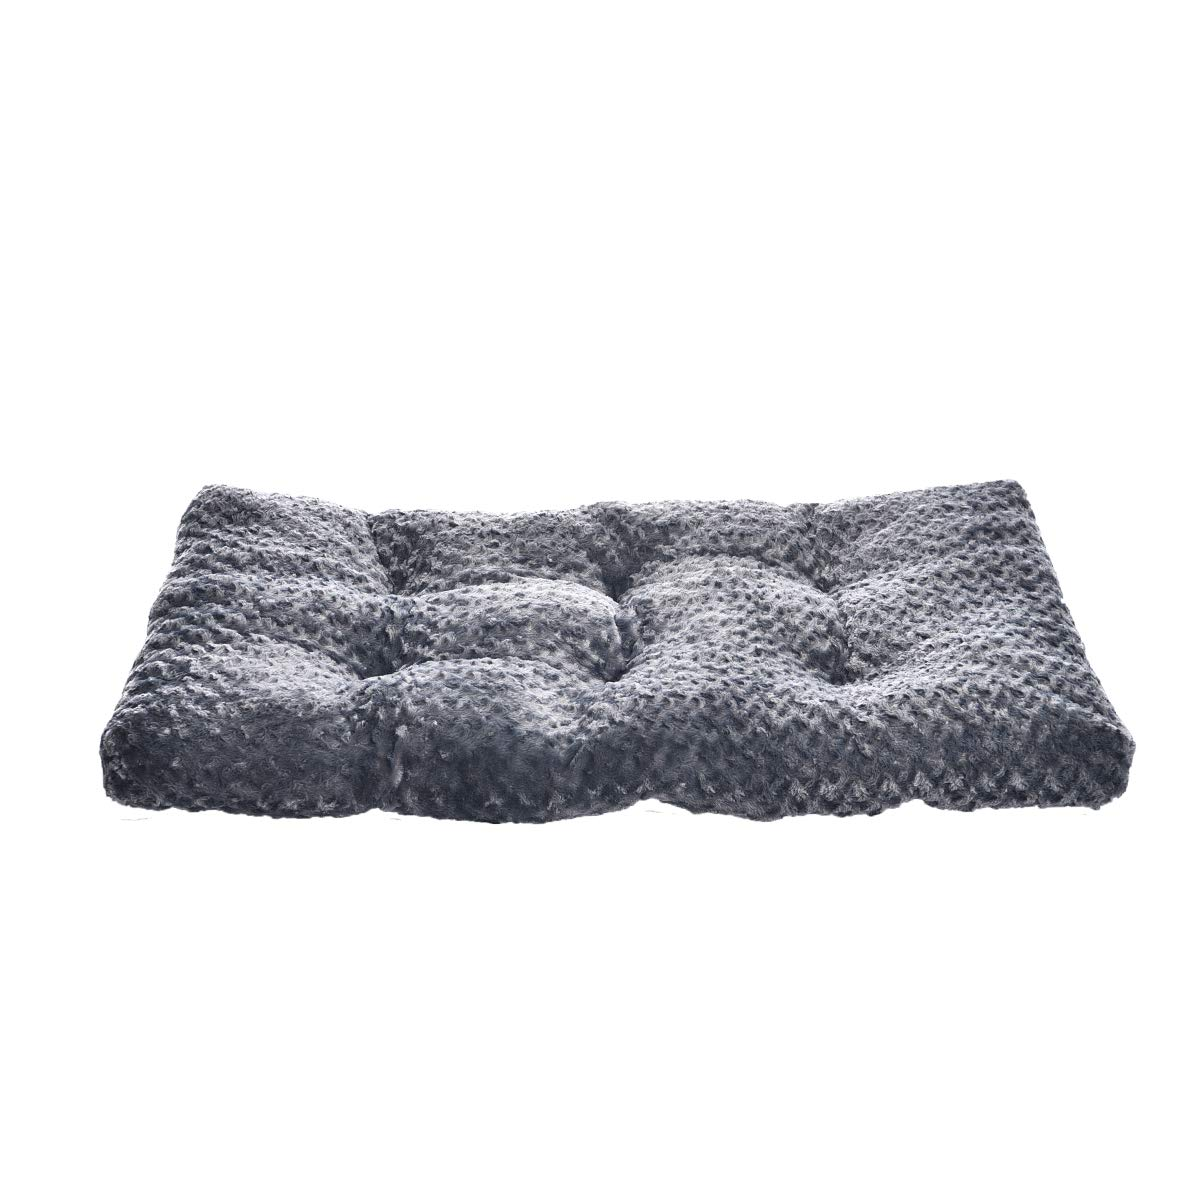 AmazonBasics Pet Dog Bed Pad - 40 x 27 x 3.5 Inch, Grey Swirl by AmazonBasics